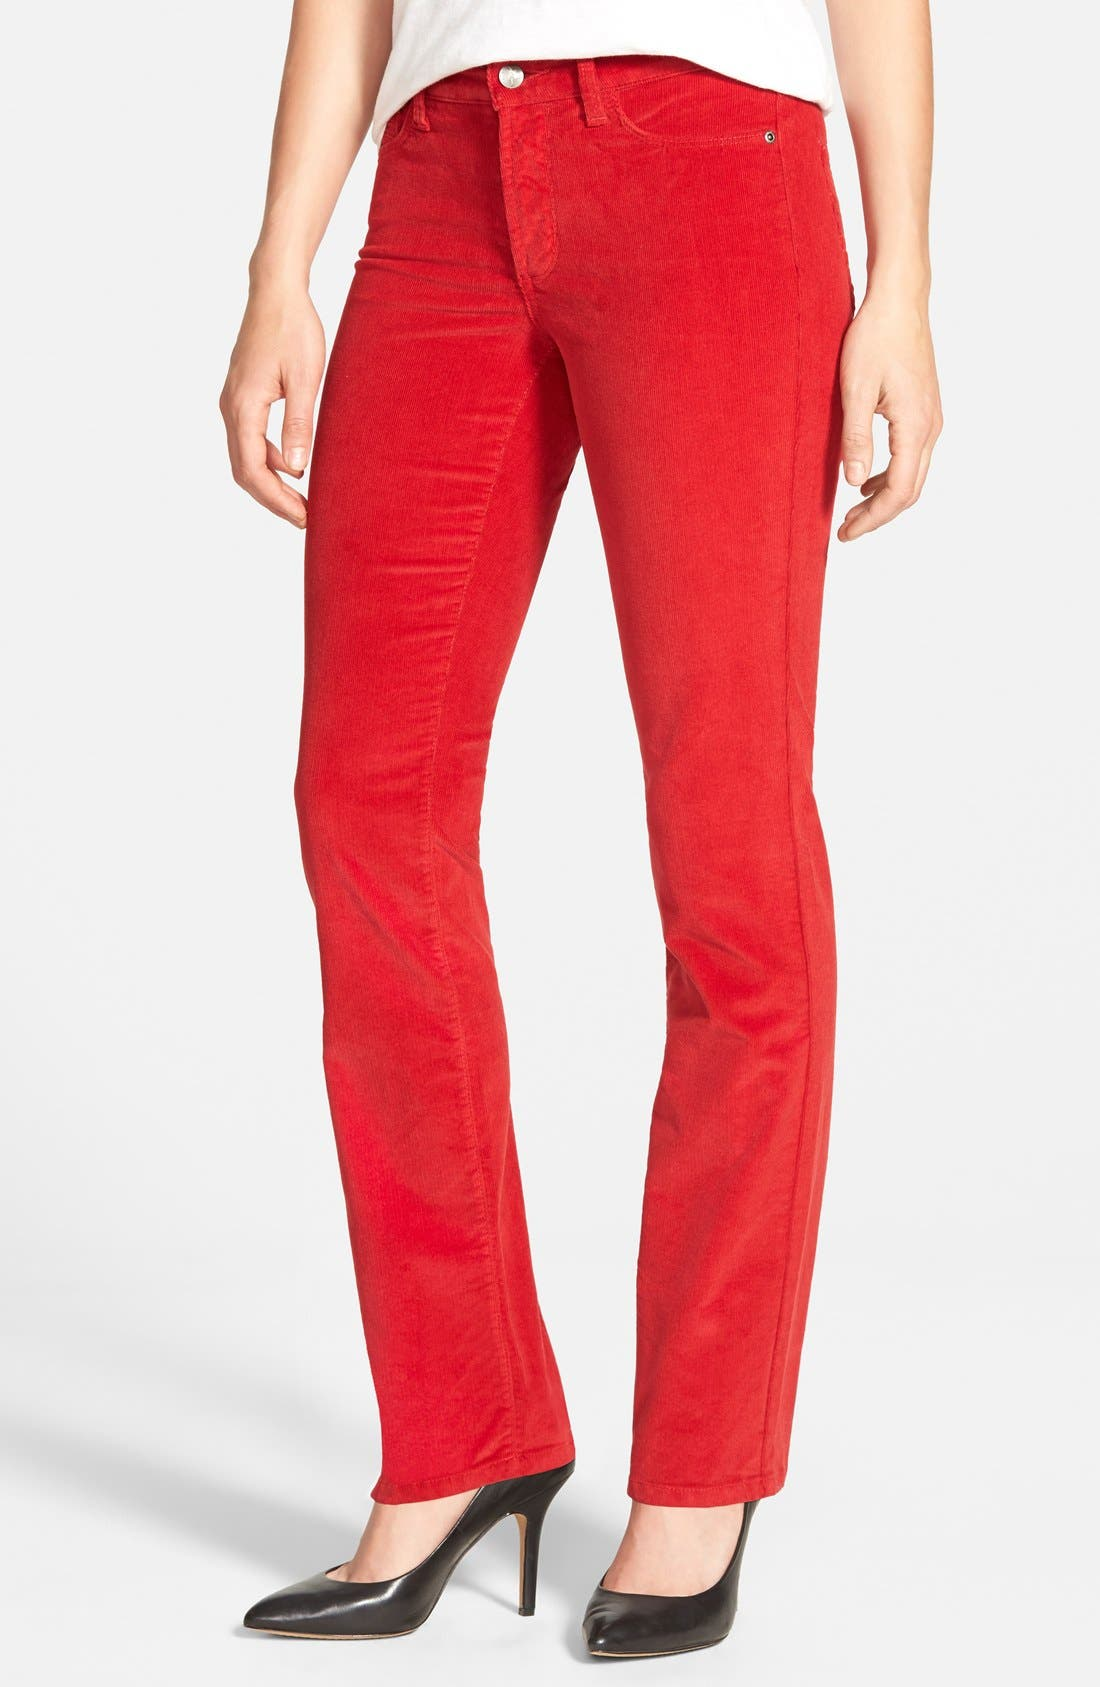 Alternate Image 1 Selected - NYDJ 'Marilyn' Stretch Straight Leg Corduroy Pants (Regular & Petite)